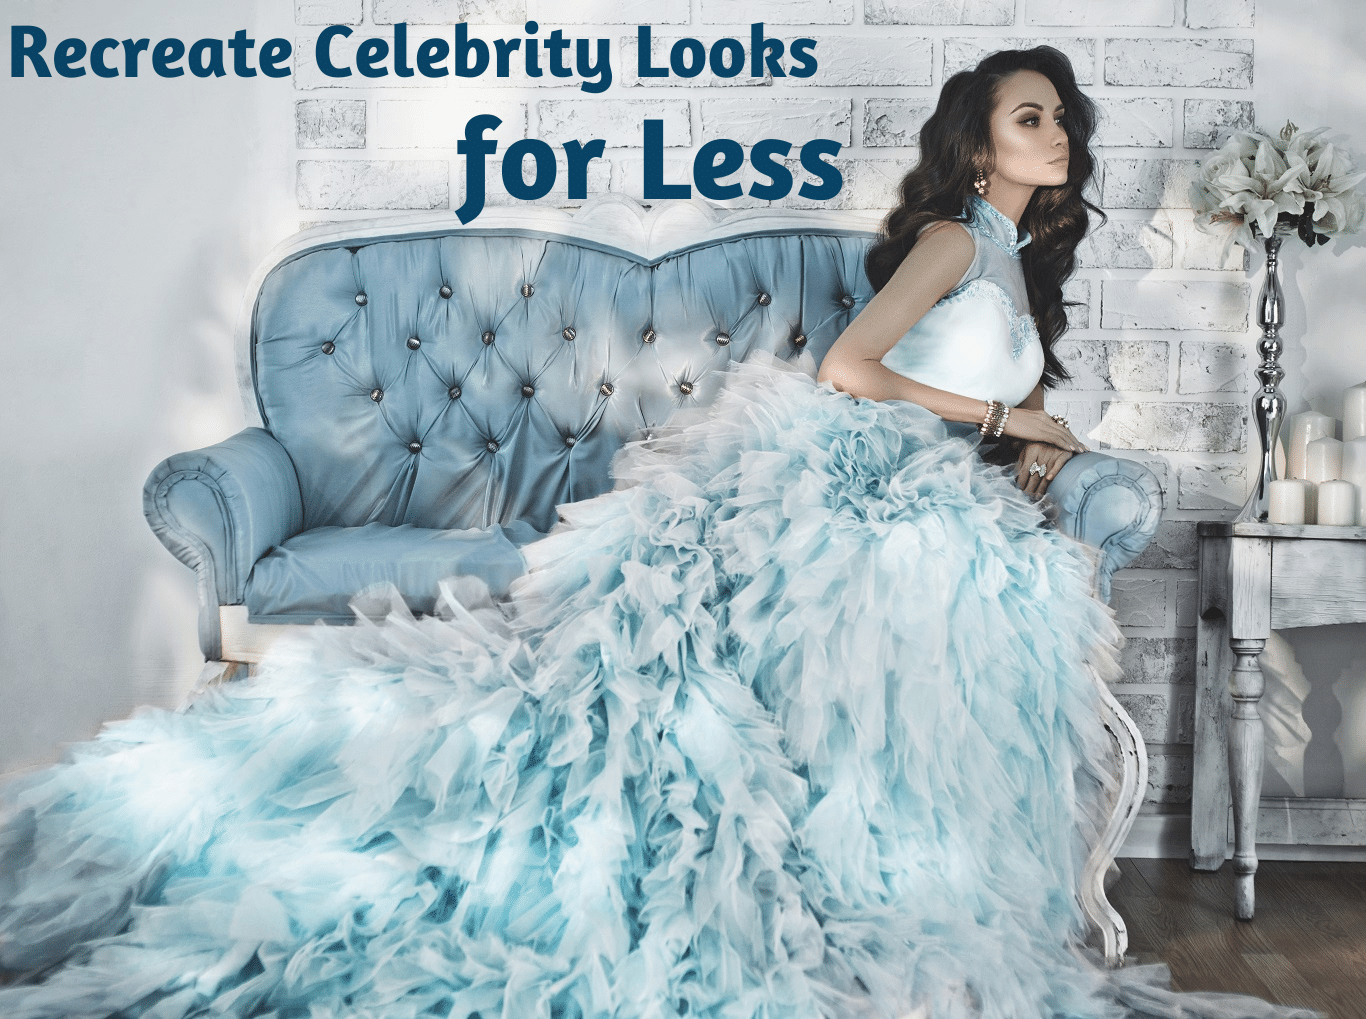 Recreate Celebrity Looks for Less